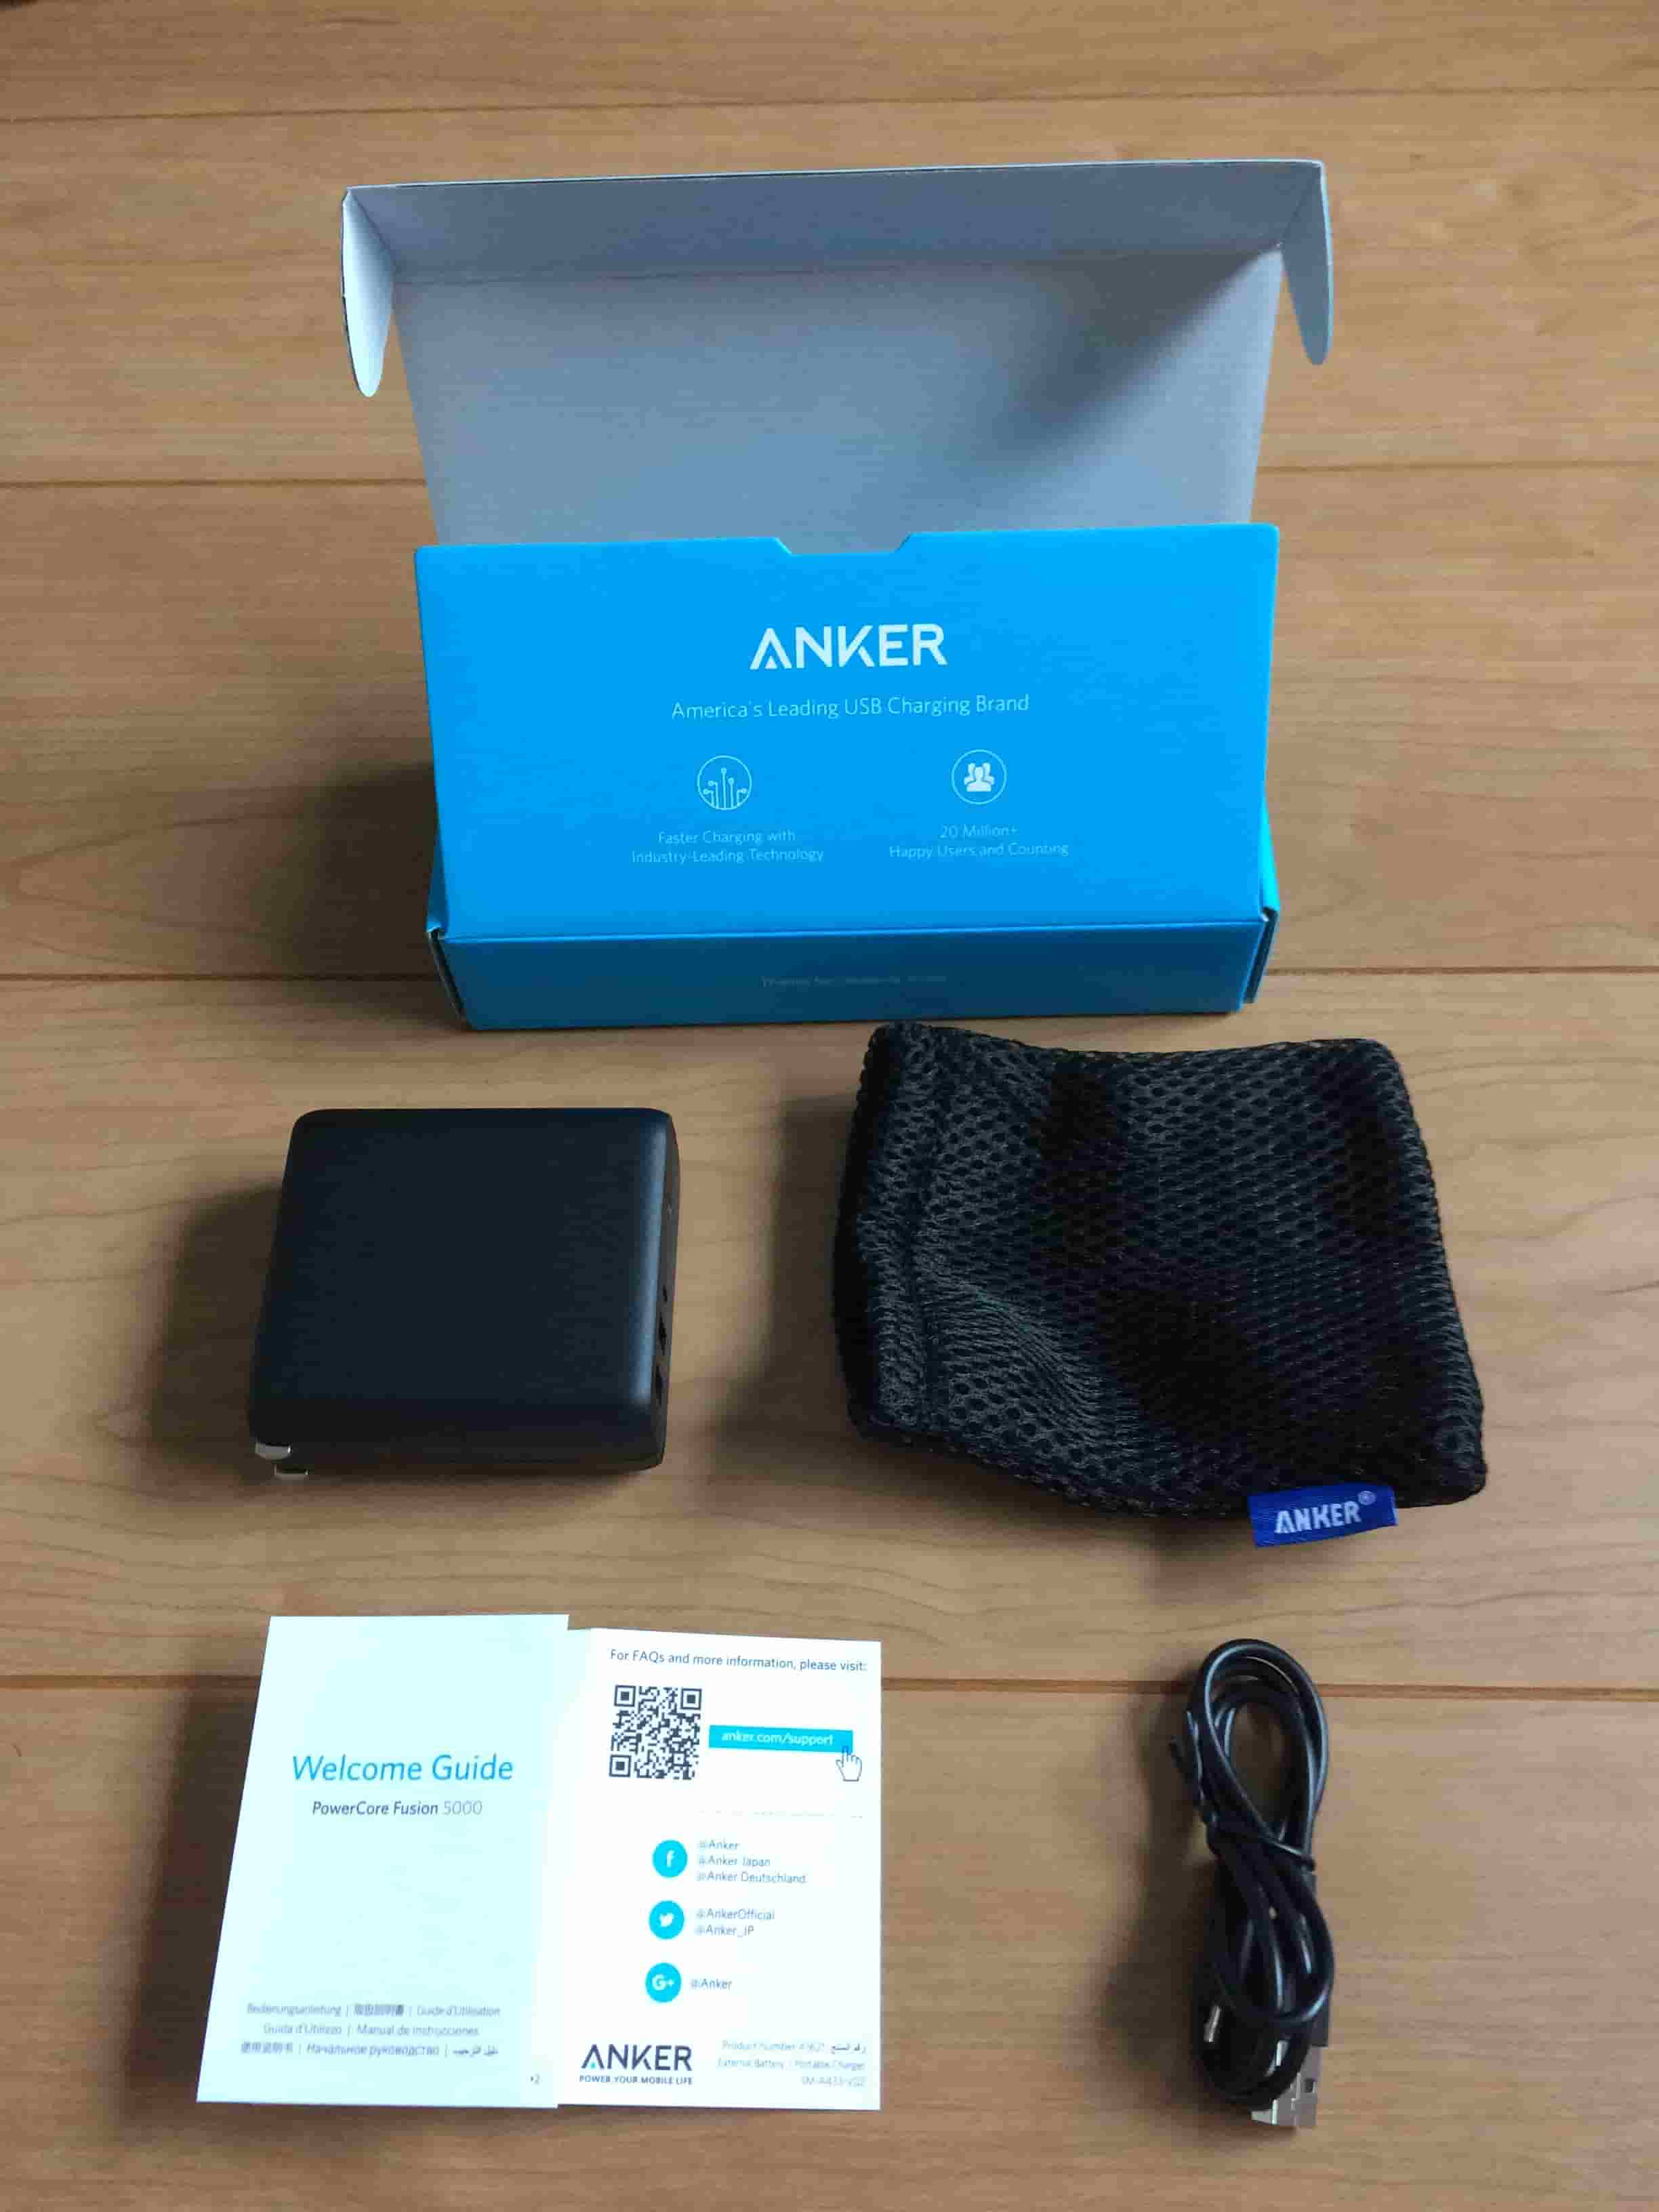 Anker PowerCore Fusion5000の画像